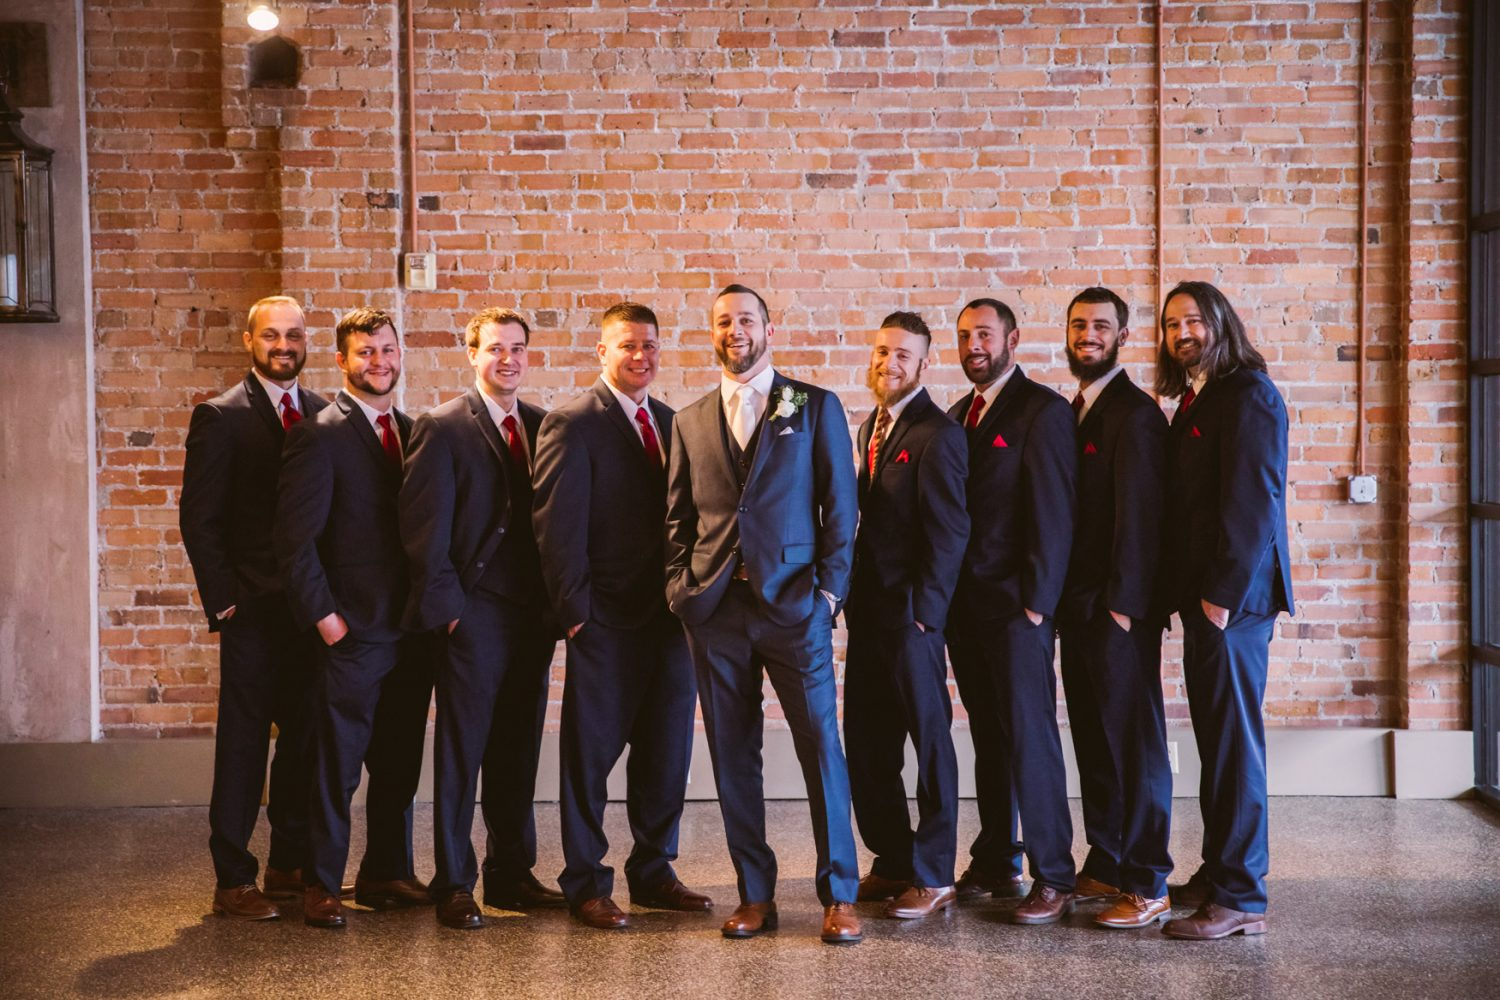 Wedding Groomsmen Portrait The Venue Asheville NC Wedding Photography